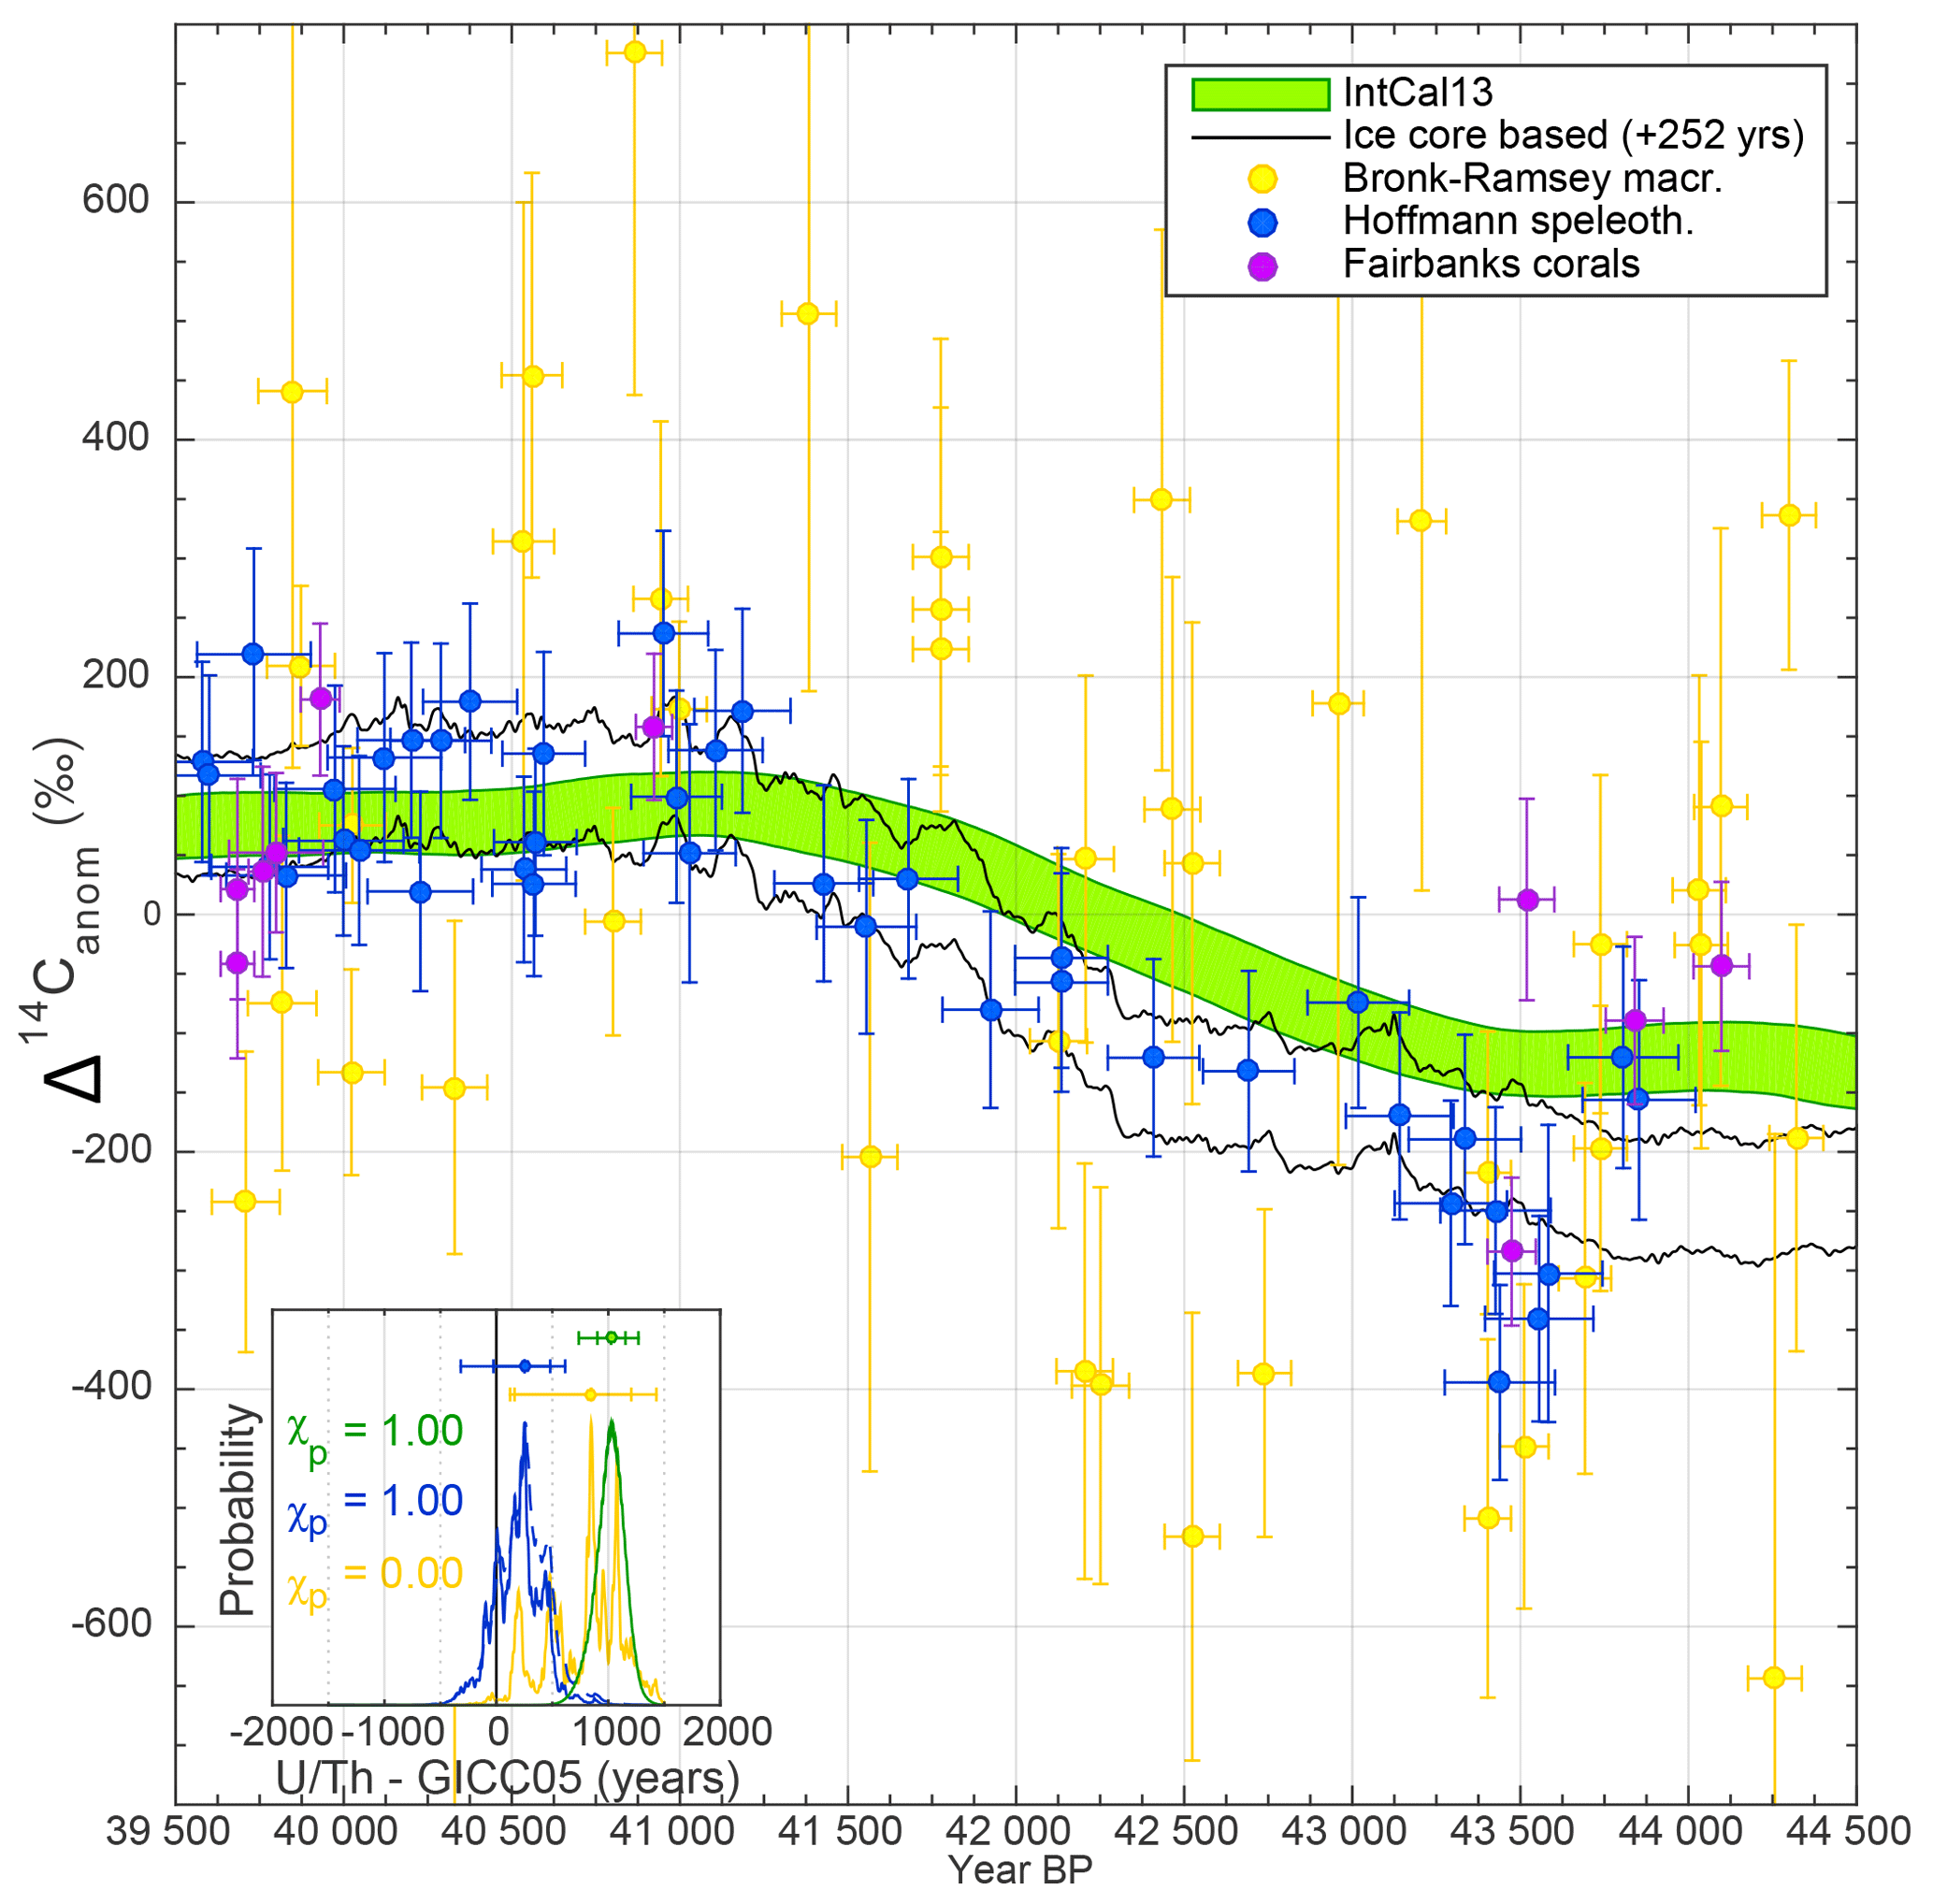 CP - Connecting the Greenland ice-core and U∕Th timescales